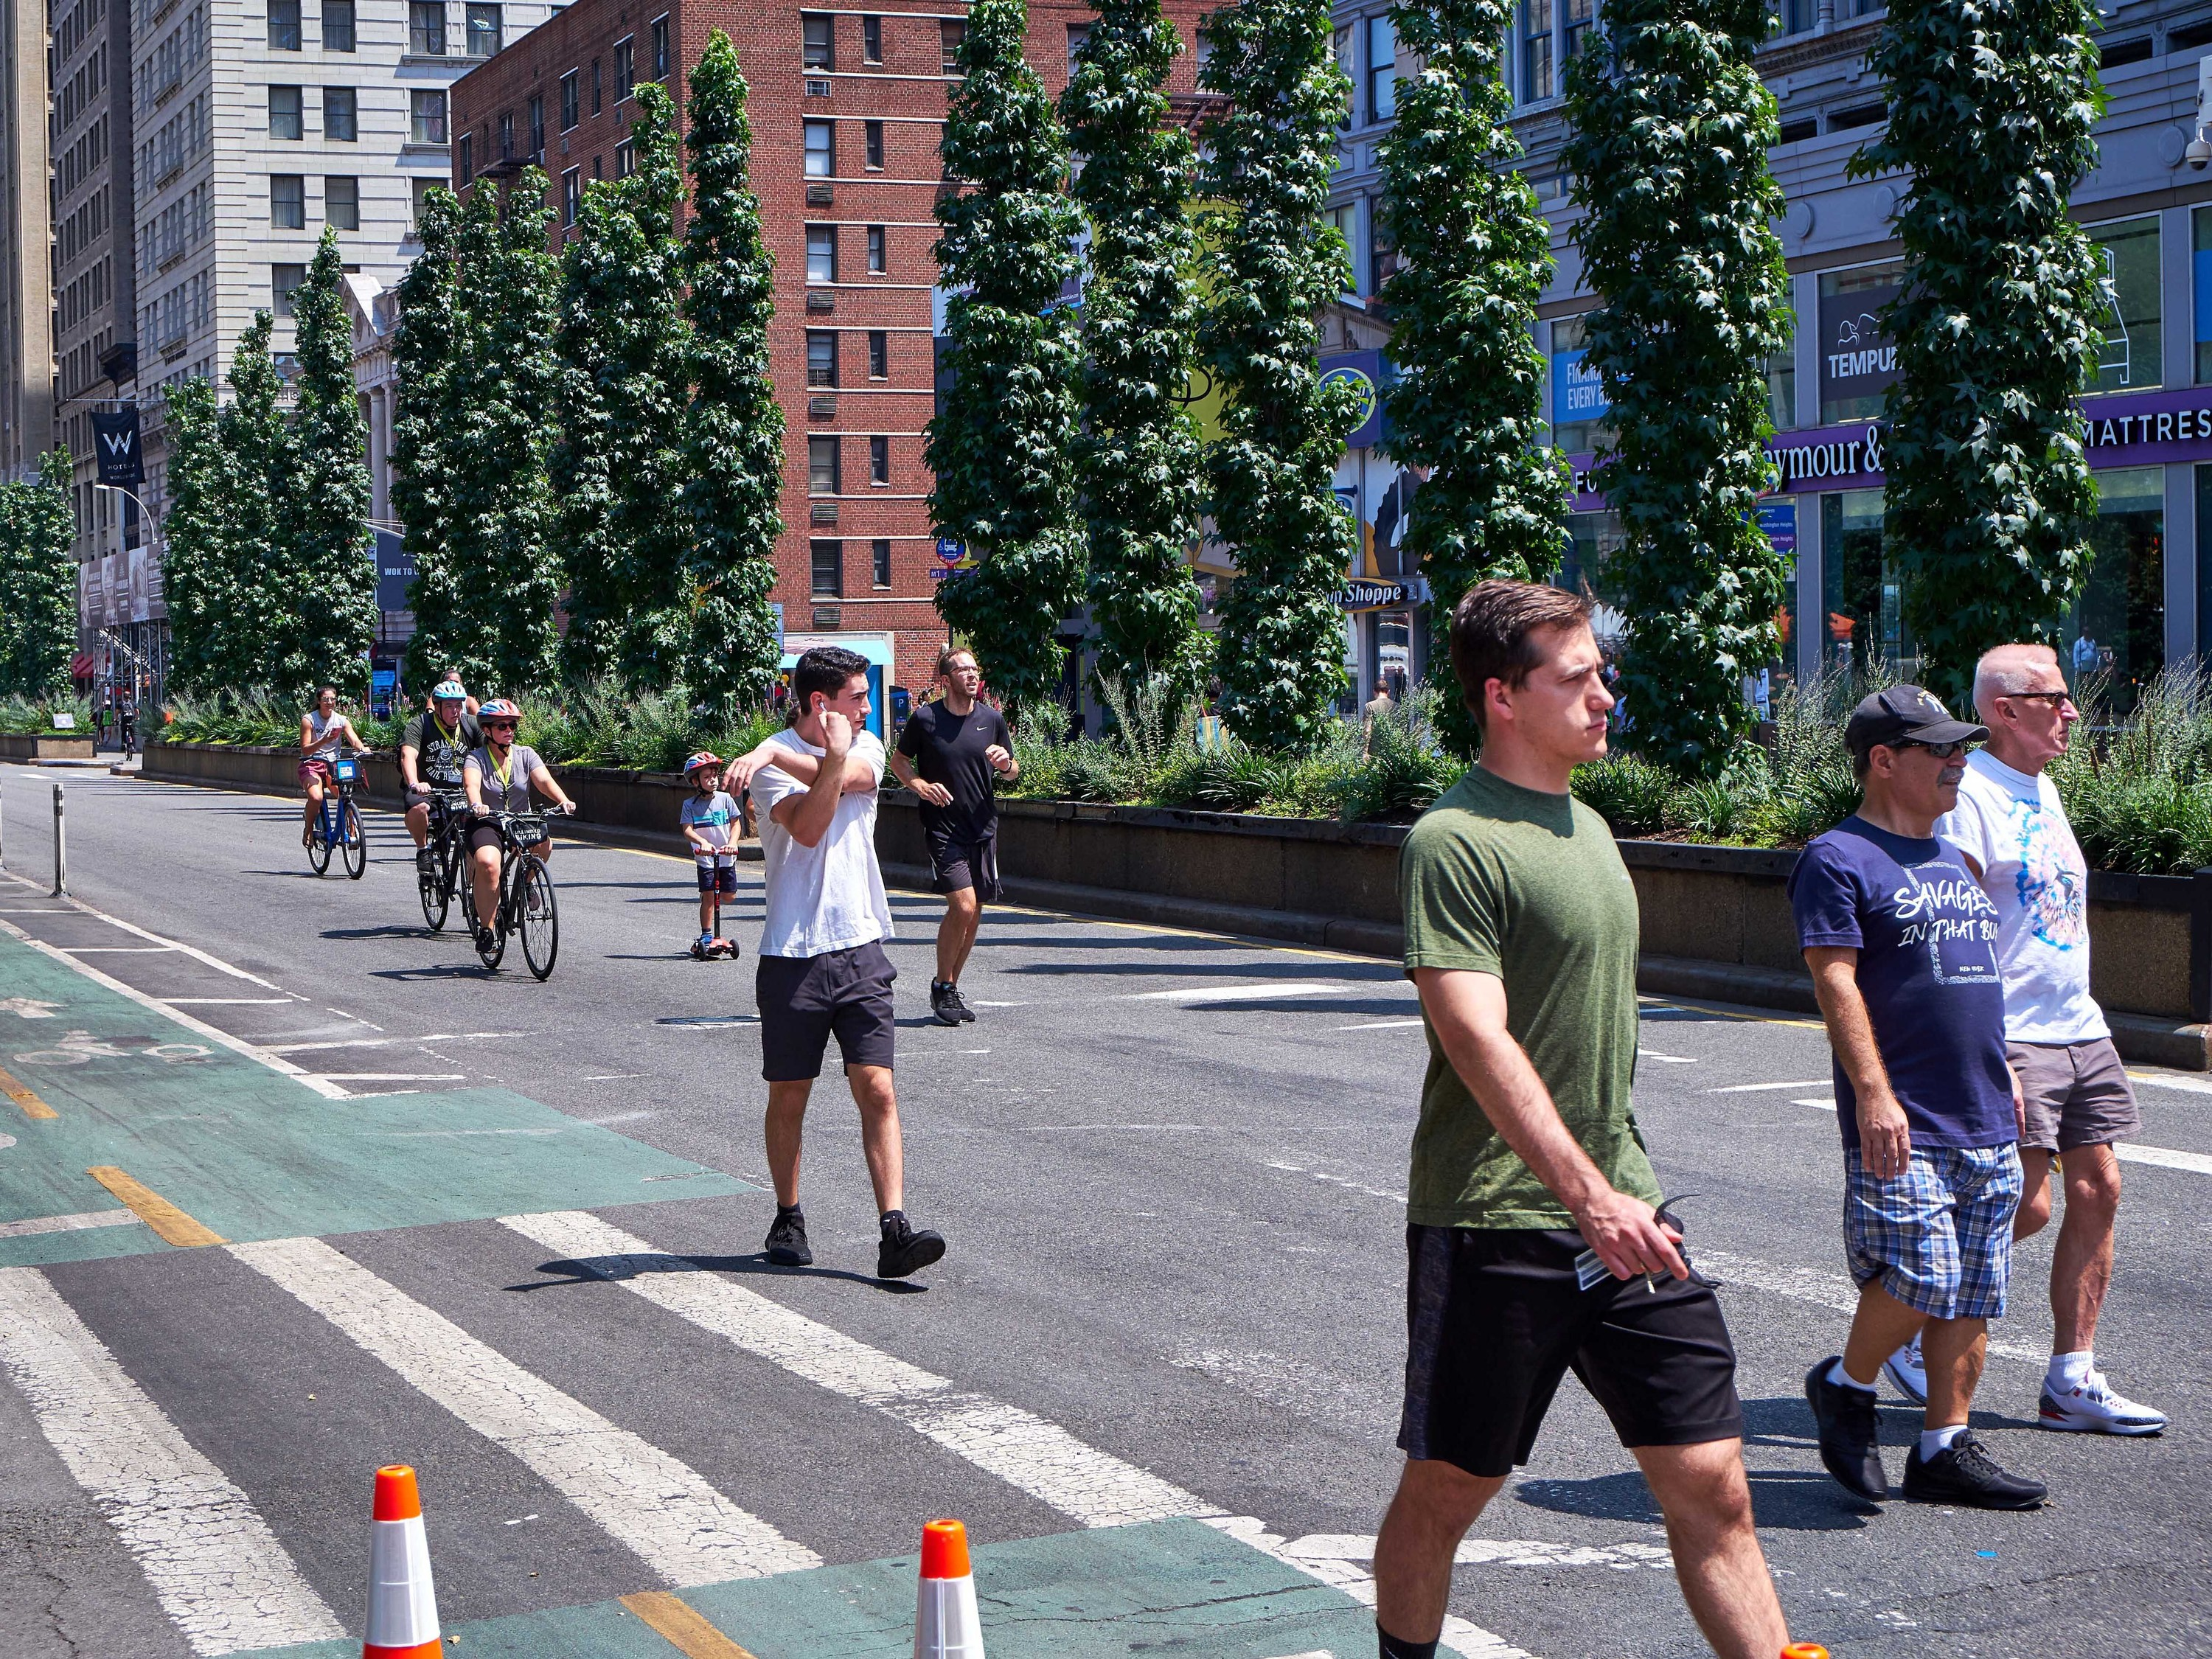 NYC has opened 23 more miles of streets to pedestrians